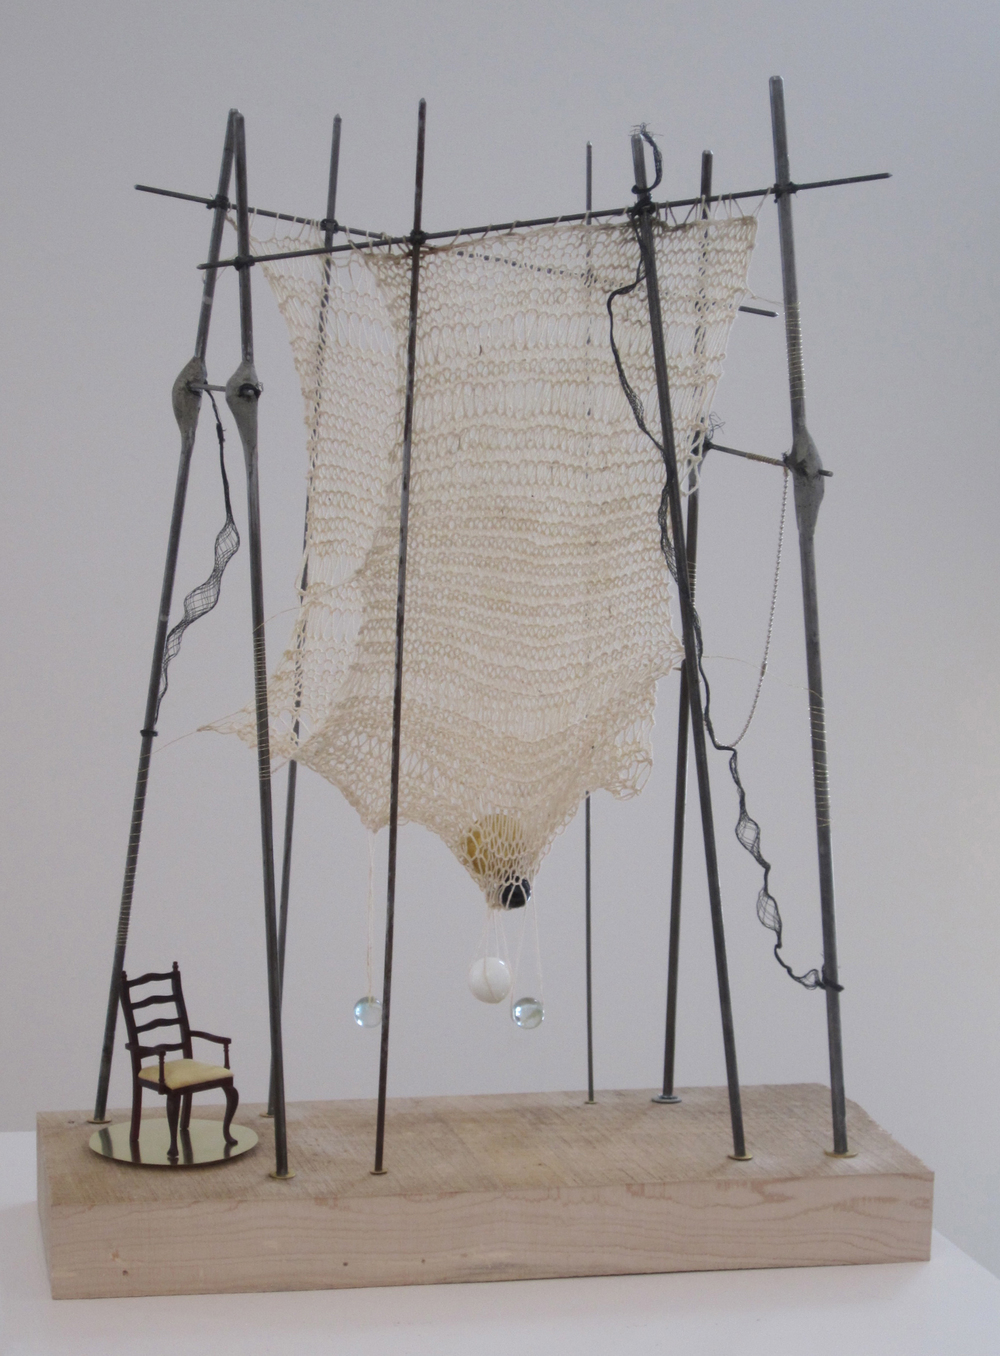 "<p><strong>JAN POWELL</strong>mixed media sculpture, printmaking<a href=""/jan-powell"">More →</a></p>"